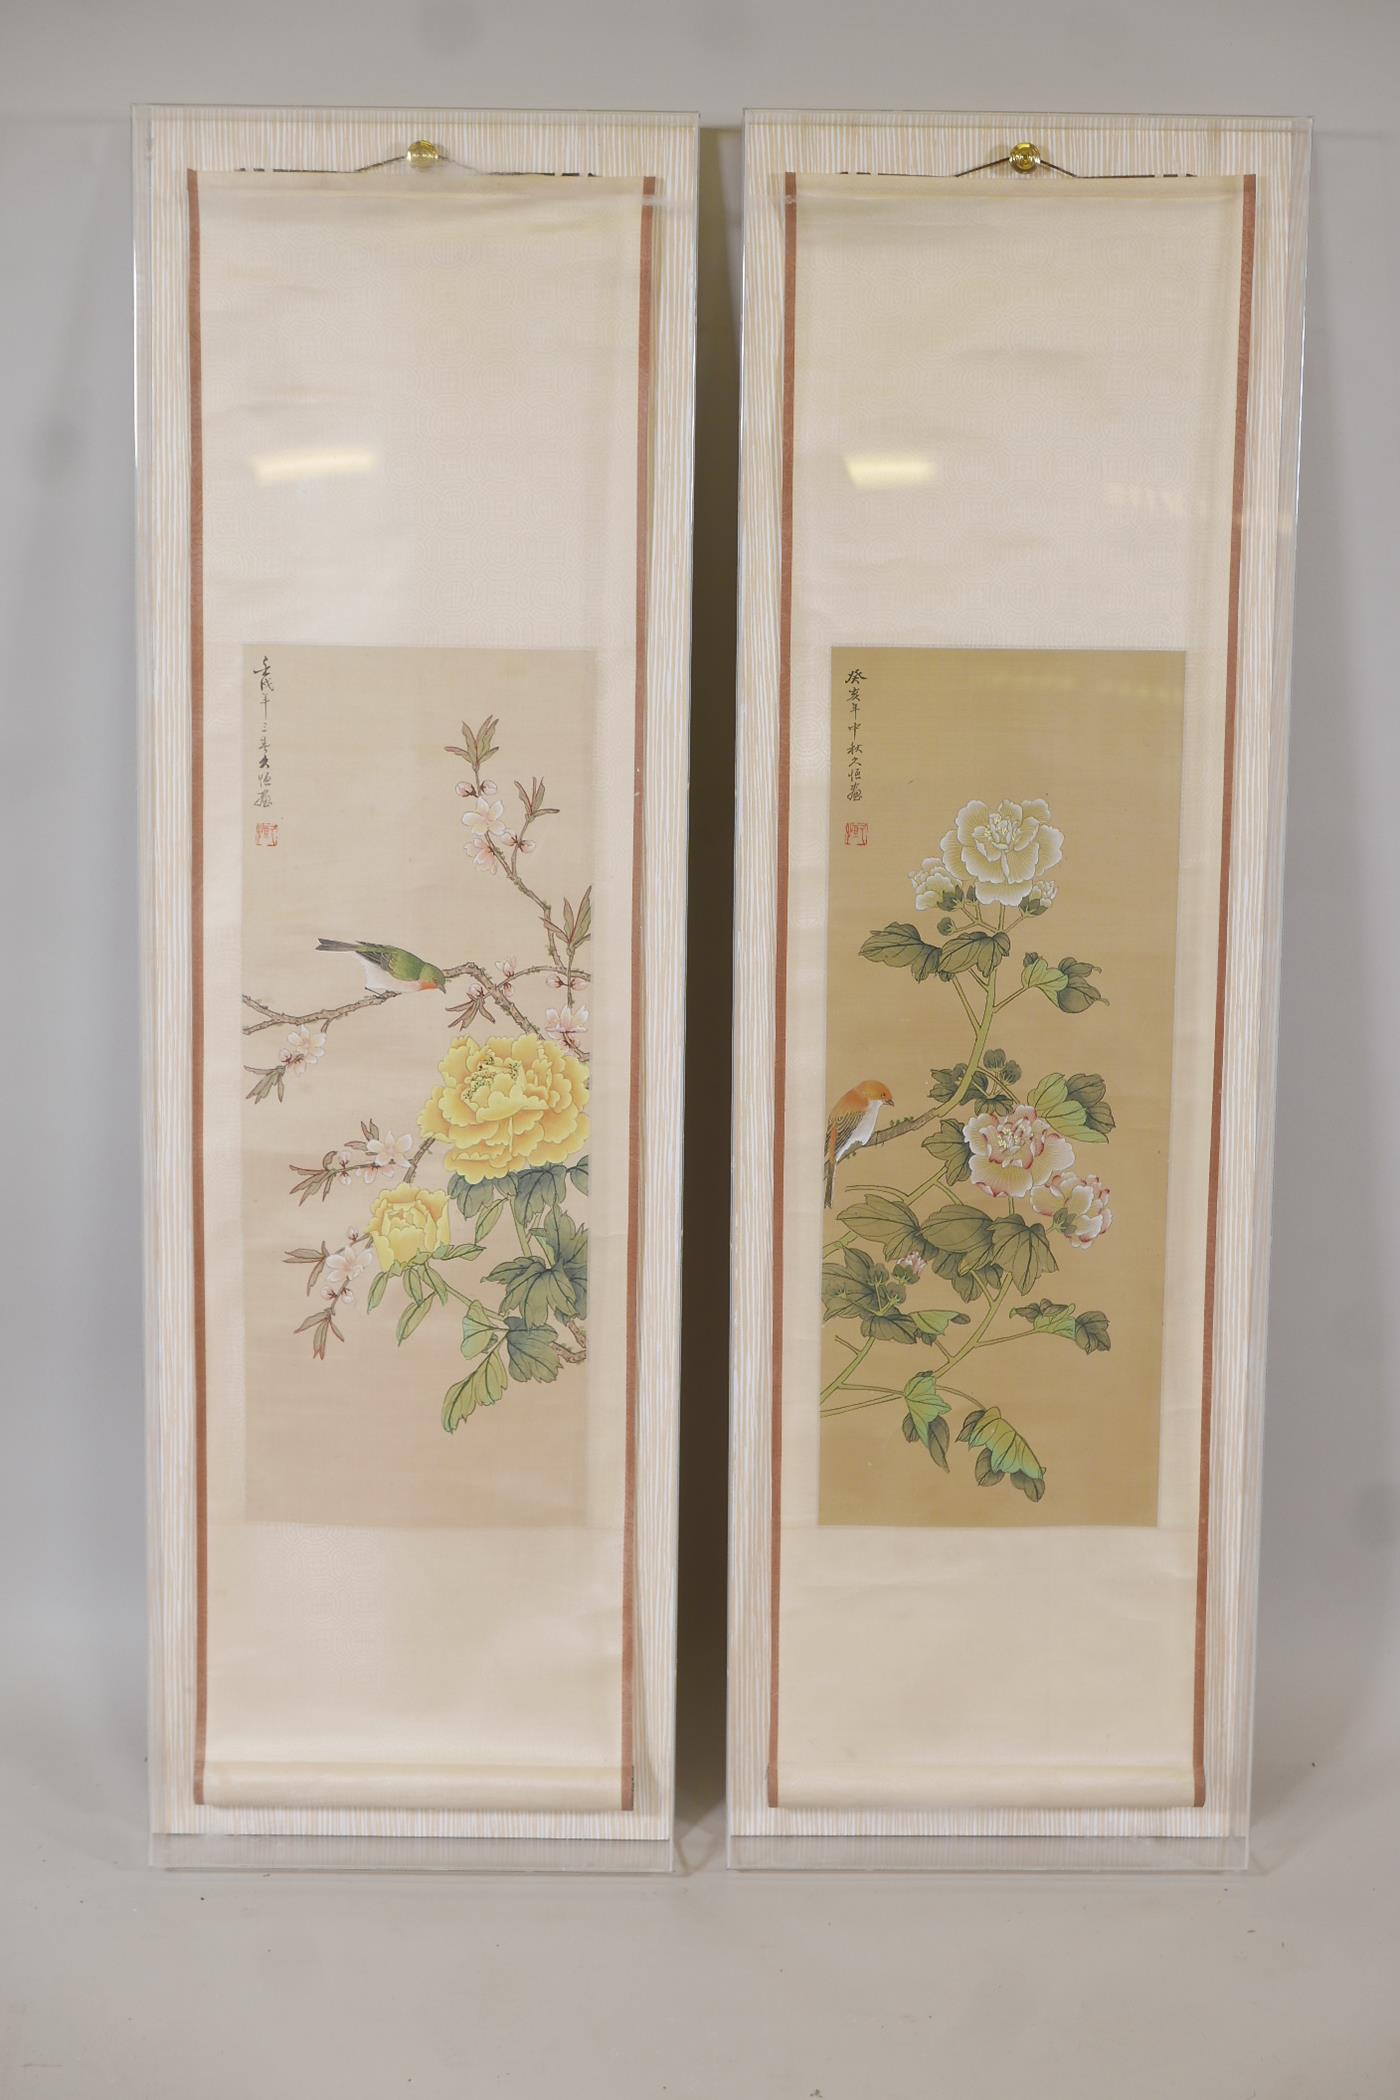 Two framed Chinese scrolls painted with birds and flowers, having inscriptions and red seal marks,